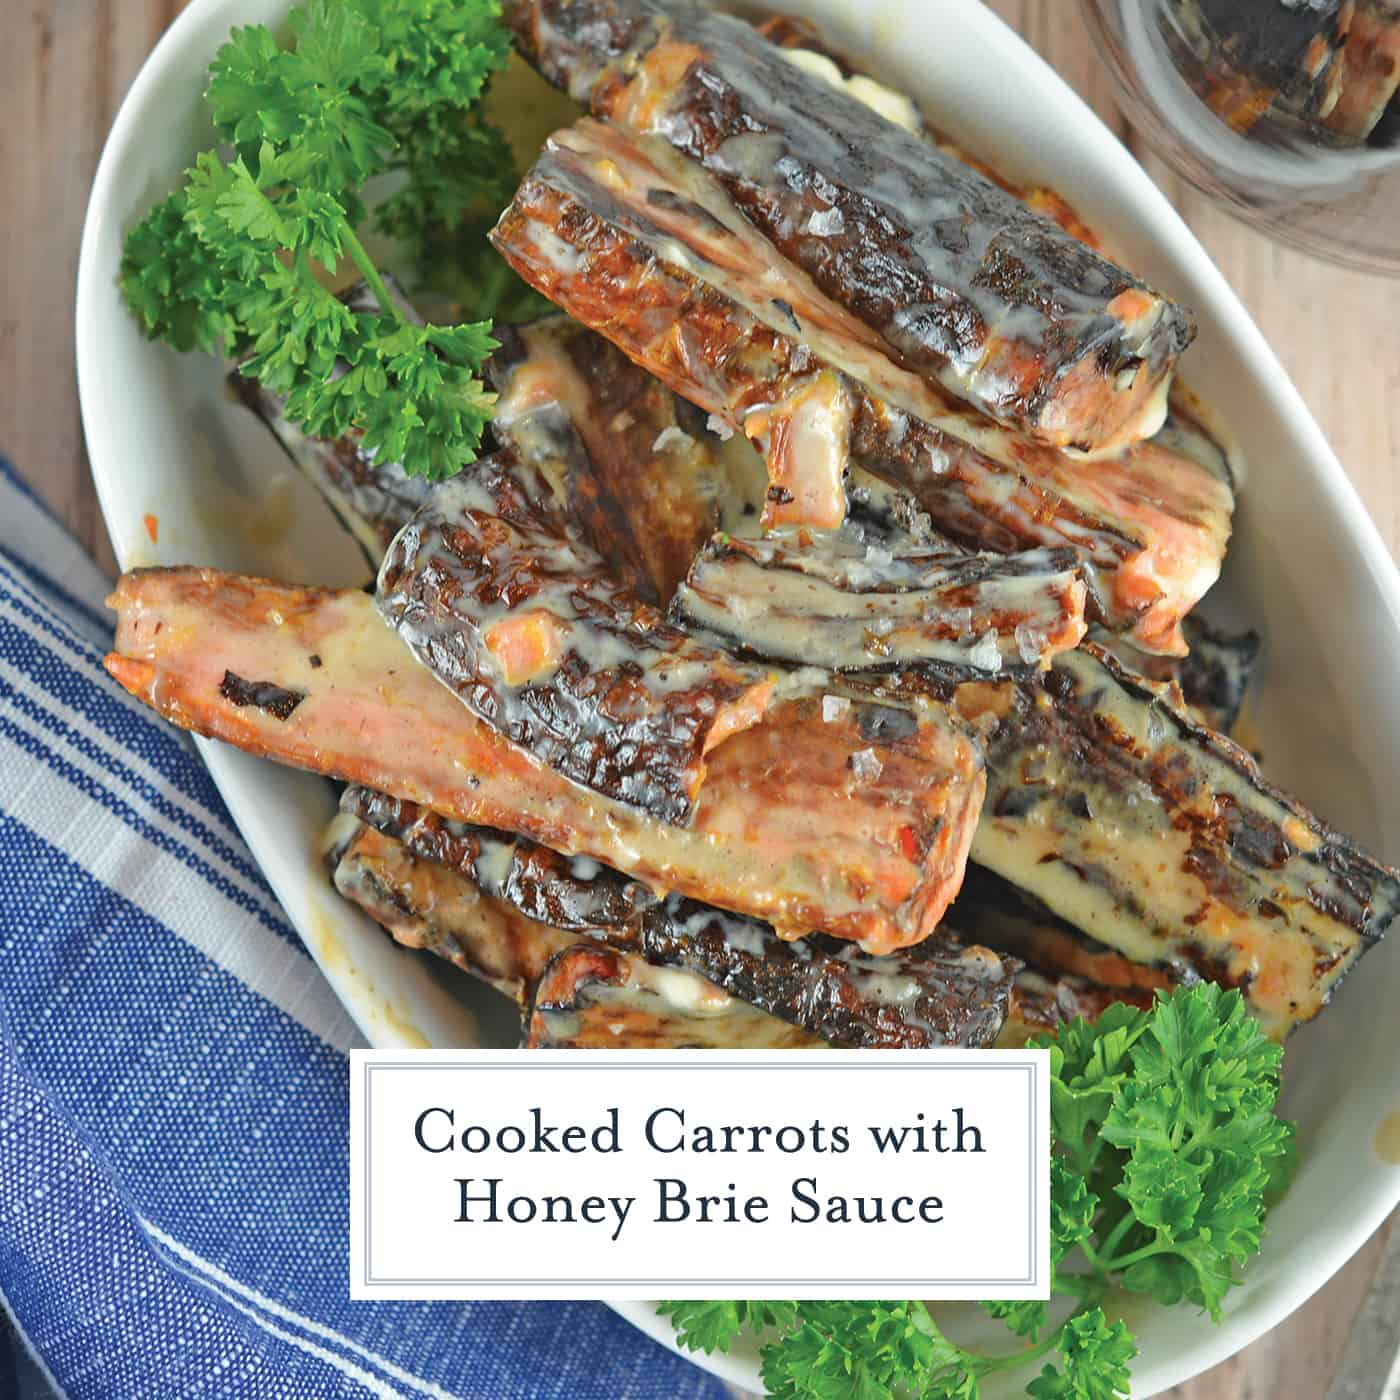 Cooked Carrots with Honey Brie Sauce are charred to a soft texture then tossed in cheese and honey. You'll never look at burned food the same way again! #cookedcarrots #carrotsidedish #carrotrecipes www.savoryexperiments.com